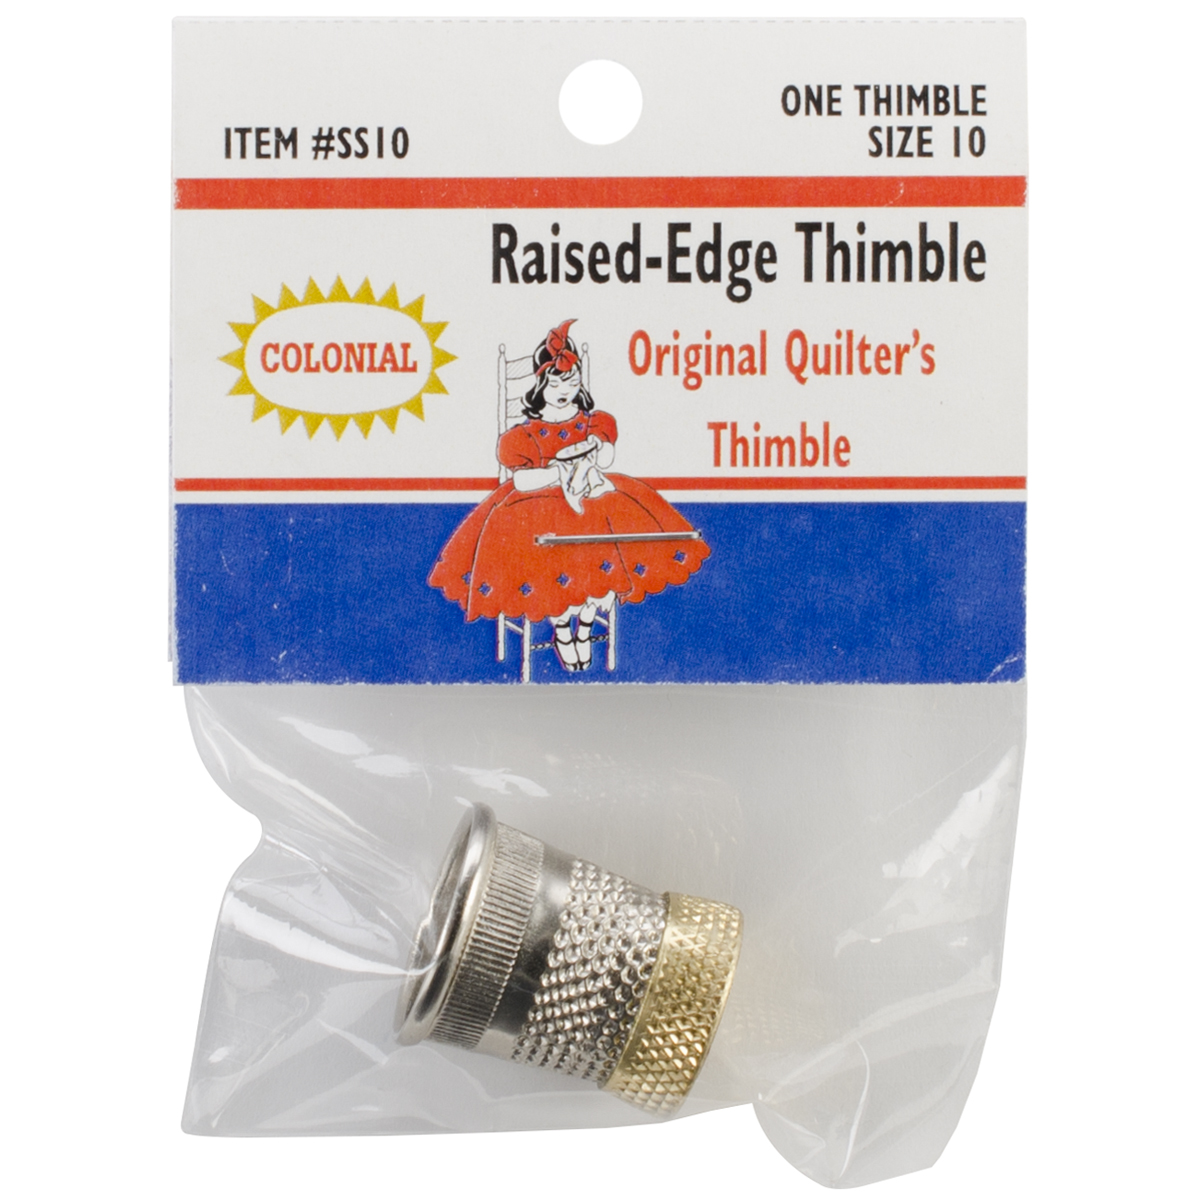 Raised-Edge Thimble-Size 10